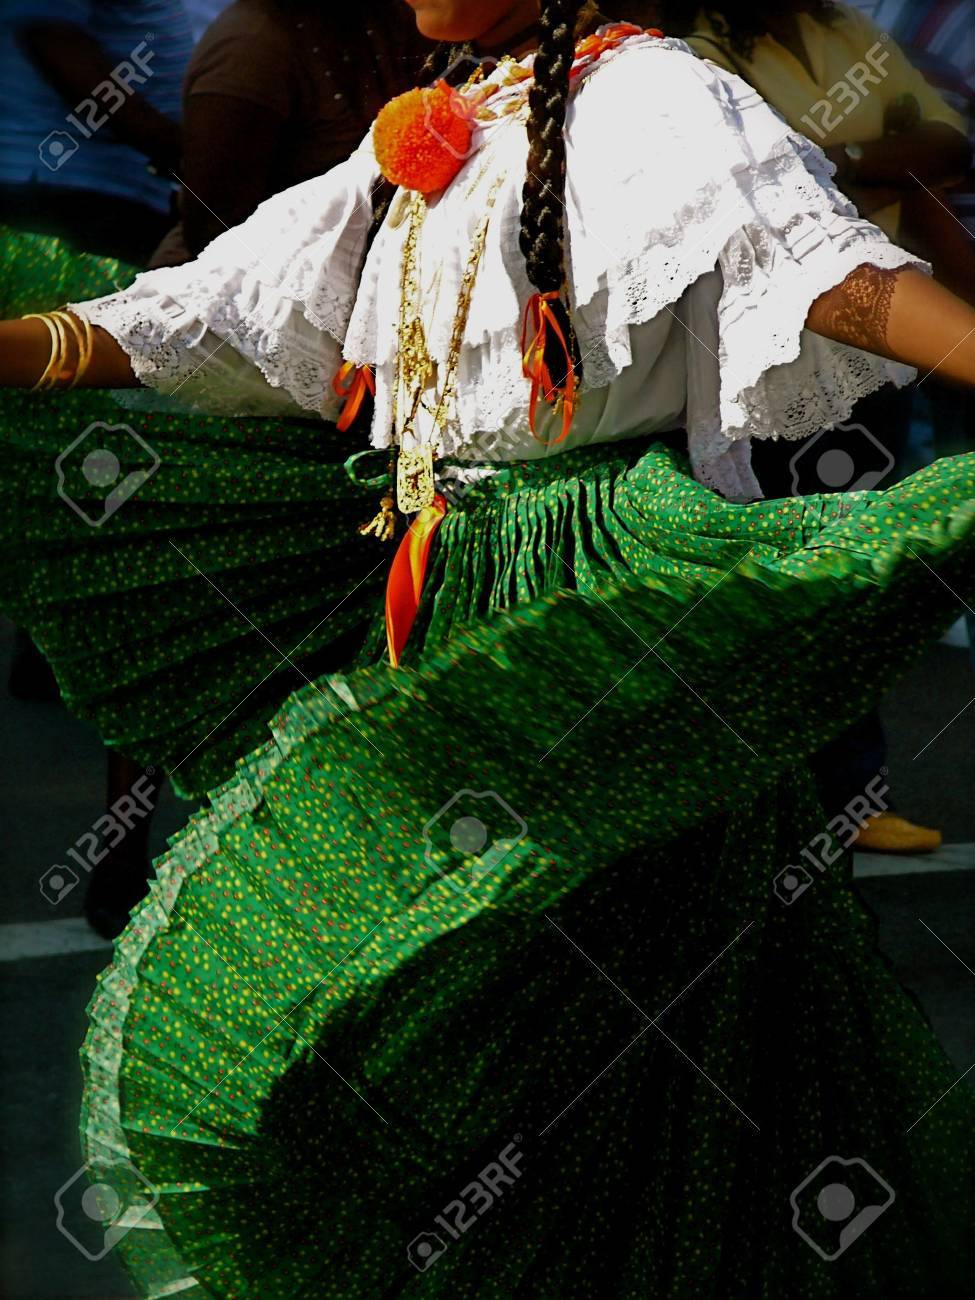 Traditional Folk Dancer in Green Pleated Skirt Performs in outdoor festival, Brooklyn, New York Stock Photo - 1831750